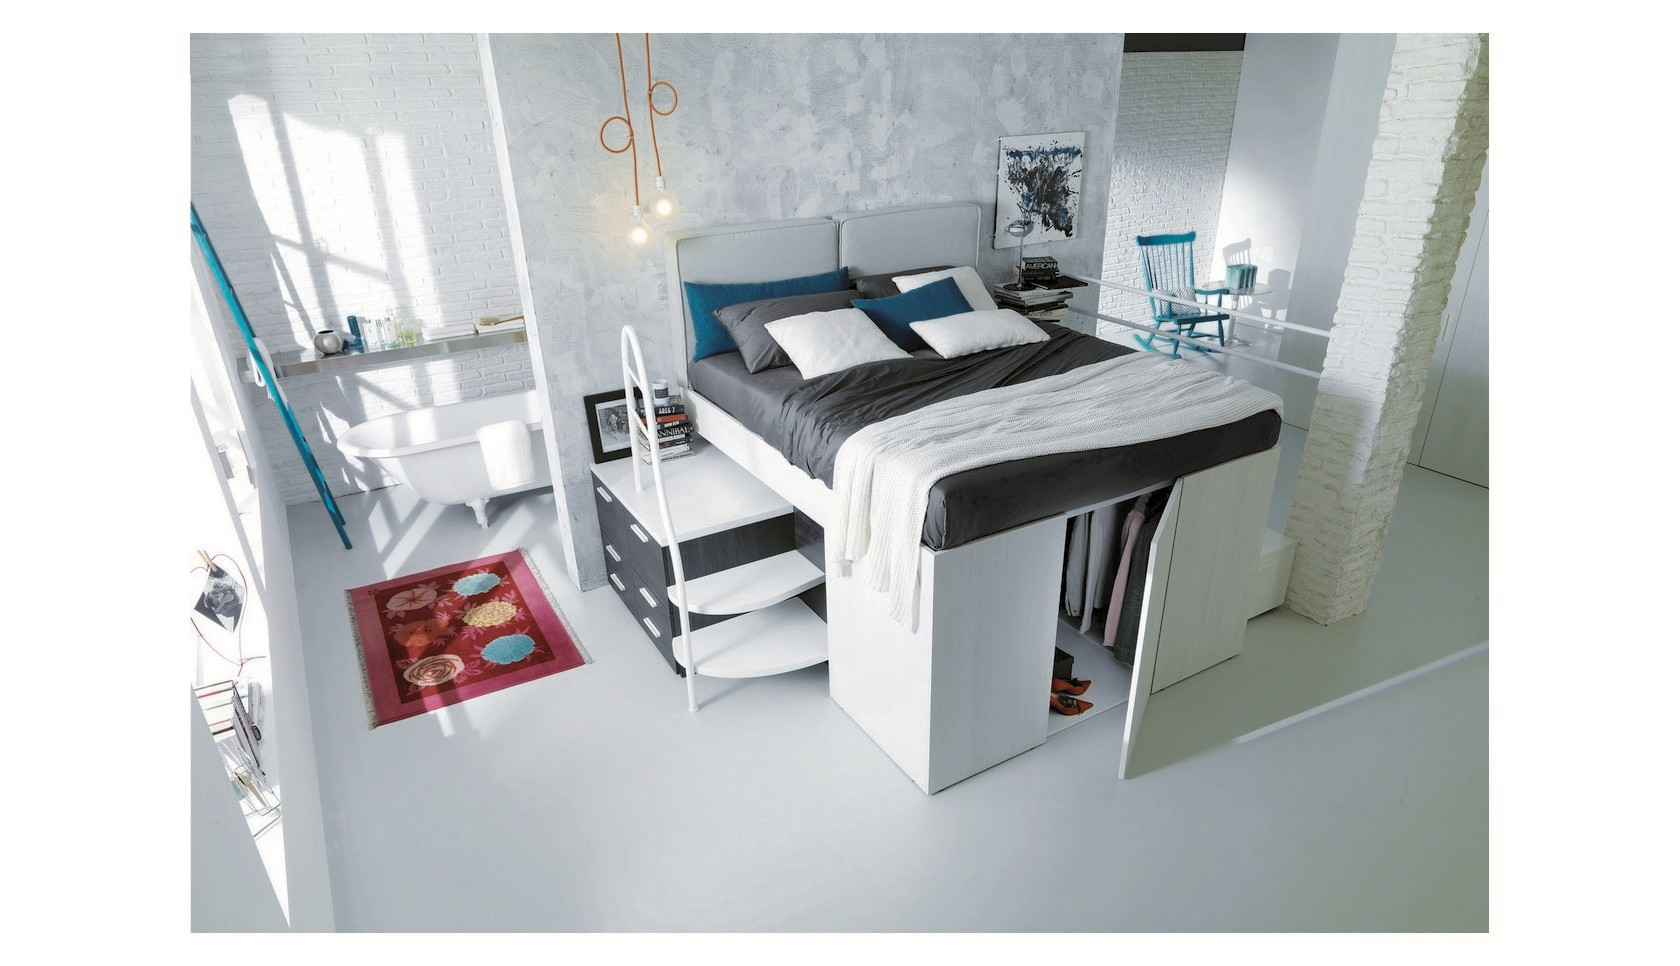 Bed with mini closet underneath - Arredamento salvaspazio mobili multifunzionali ...